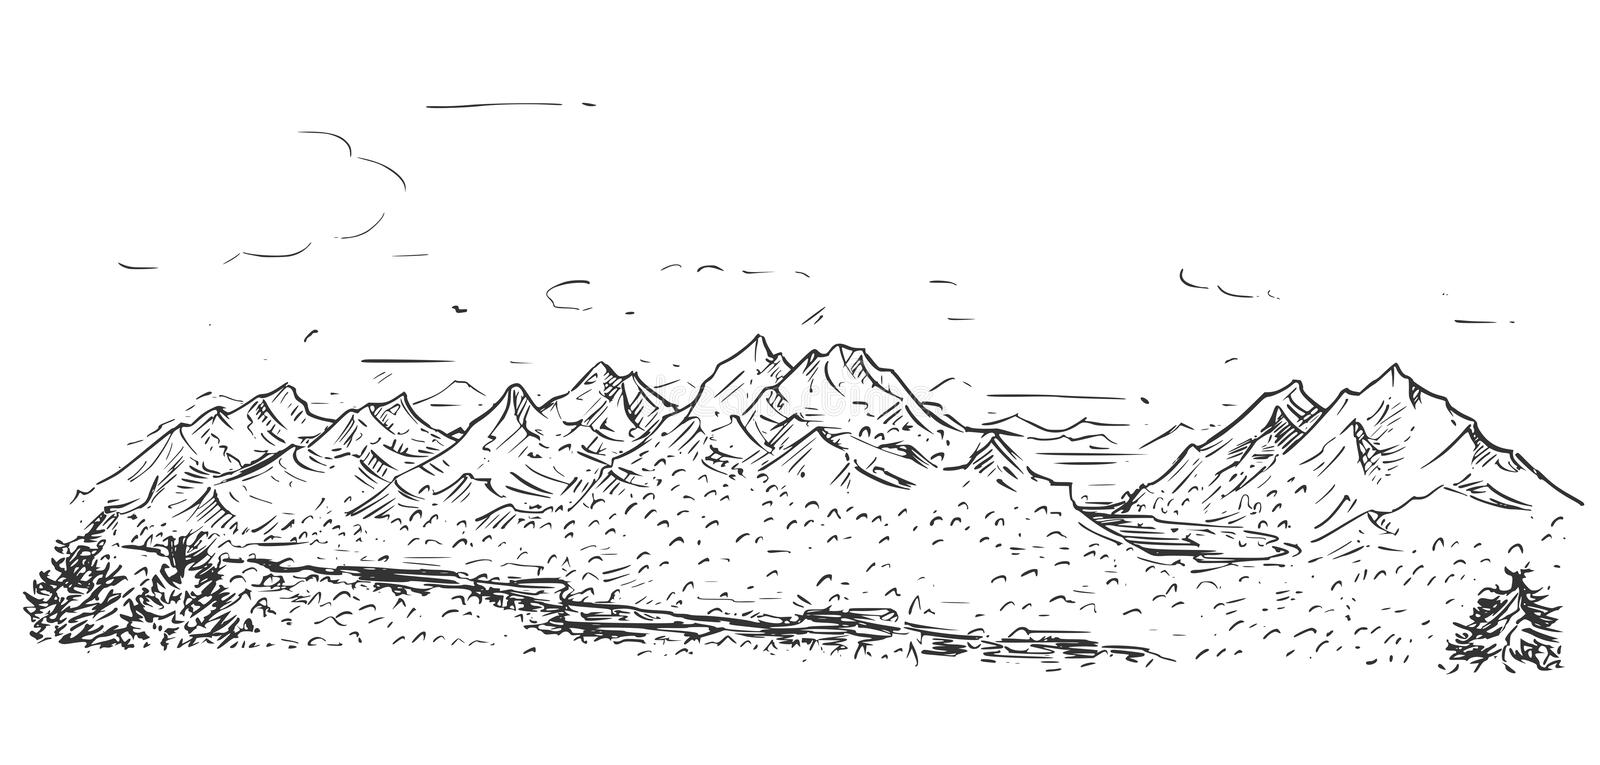 Sketchy Drawing of Mountain Hilly Rocky Landscape royalty free illustration